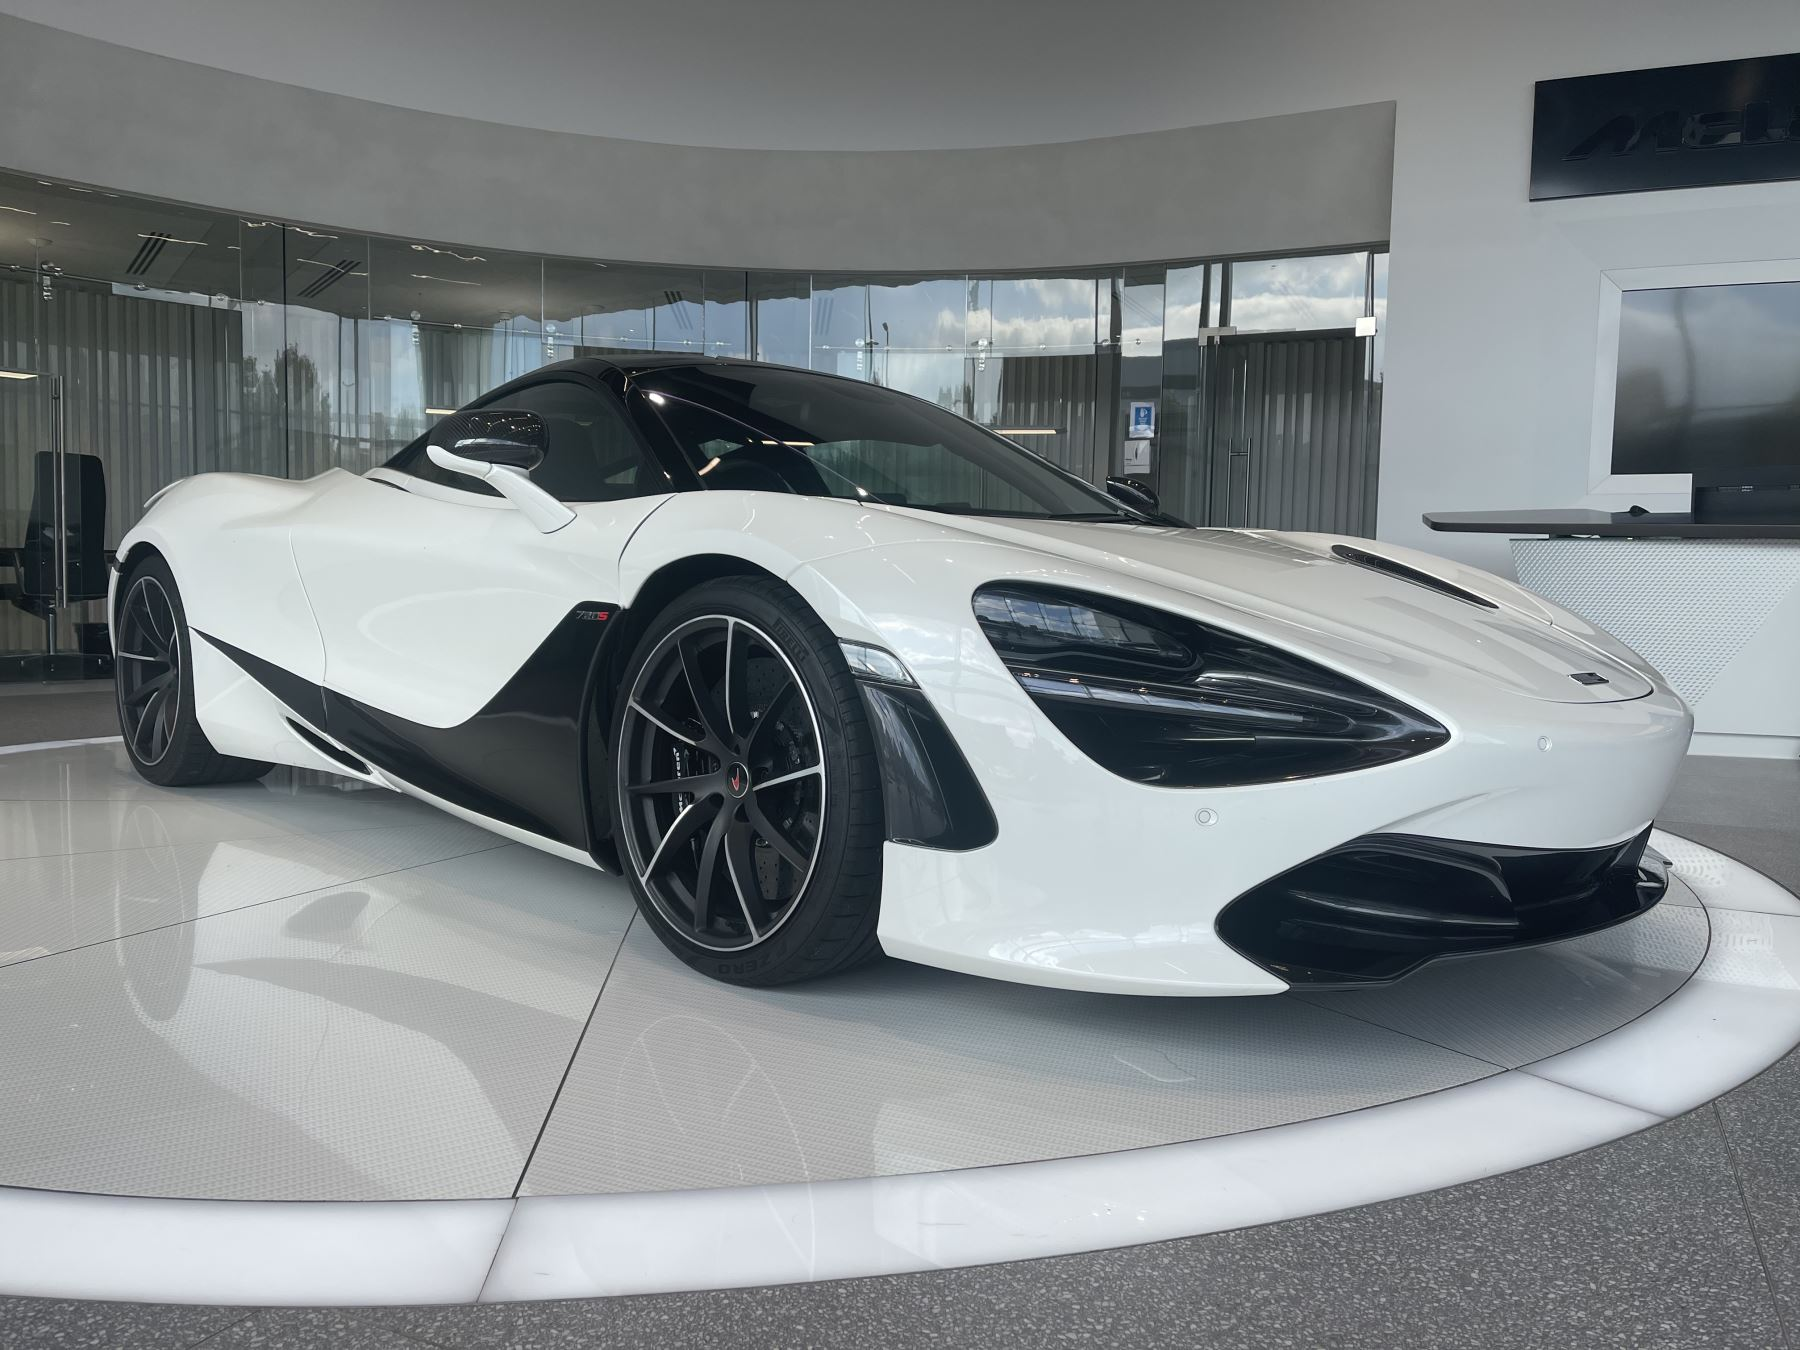 McLaren 720S V8 SSG PERFORMANCE, 1 OWNER, BIG SPEC CAR WITH LOW MILEAGE 4.0 Automatic 2 door Coupe (2018)